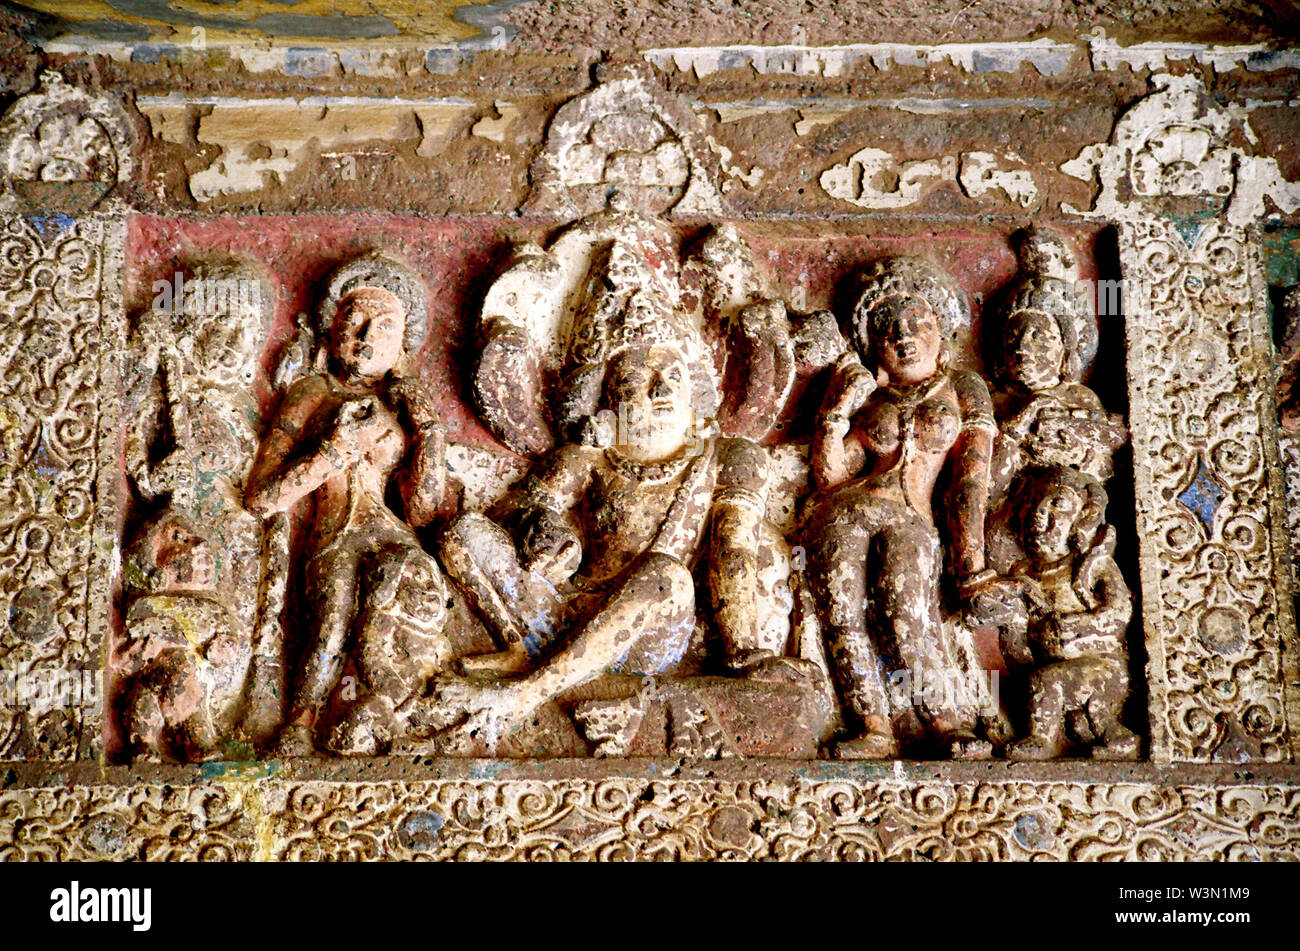 Stone carving at Ajanta caves, Maharashtra, India. The 29 Buddhist caves were excavated between the 2nd century B.C and the 1st A.D., and the 4-7th A.D. but they were not discovered until 1819, approximately 150 years ago by a British officer. The 29 caves contain outstanding paintings depicting the life and times of Buddha are good examples of ancient Indian art. The wall paintings, sculptures and architecture of Ajanta are celebrated as one of the true wonders of the ancient world. August 18, 2007. - Stock Image